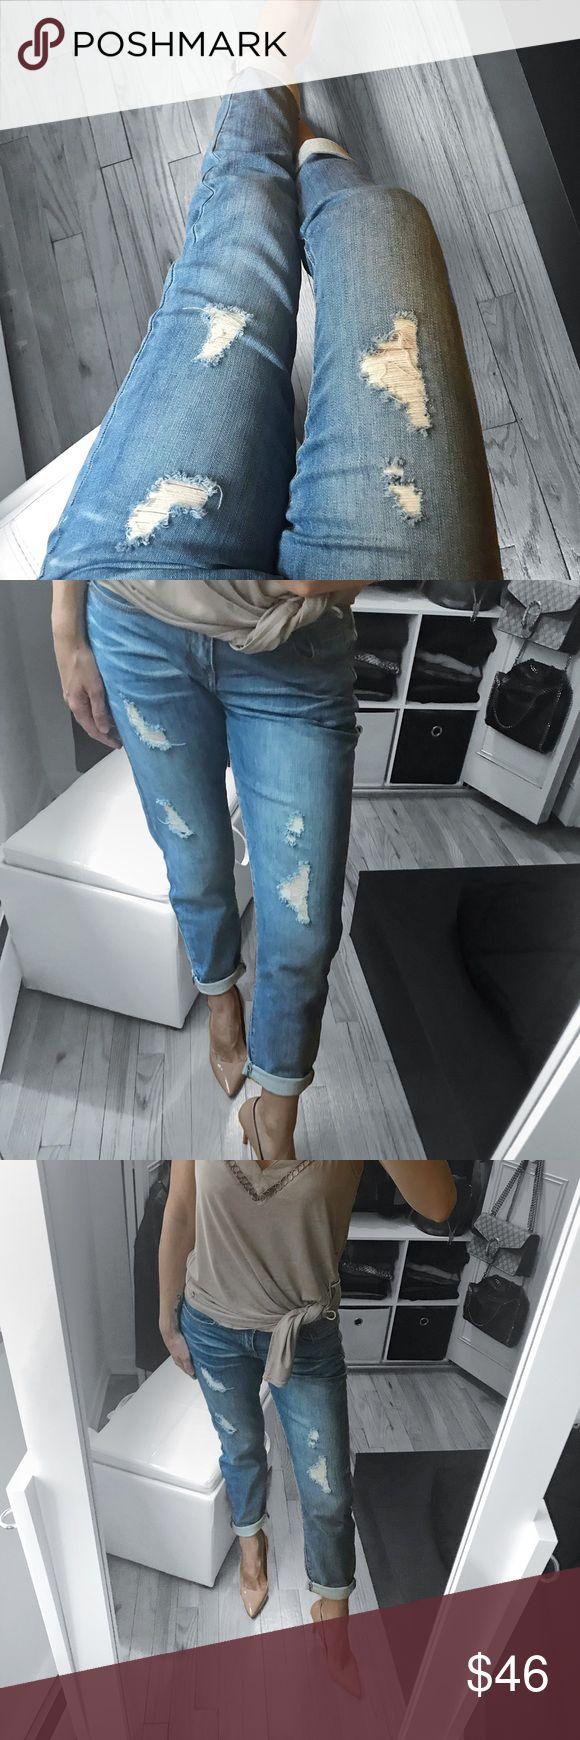 "🆕 Boyfriend Jeans Effortless chic dressing with a touch of boyish charm.   ▪️COLOR : Blue washed ▪️MATERIAL: 97/3 Cotton , Spandex ▪️MEASUREMENTS:   ▪️DETAILS: light denim, mid rise, cuffed boho, boyfriend jeans, distressed, soft  ▫️Cocoa tank top available in a separate listing  ▫️Modeling Size 1  : I'm 5' 5"" and 129 lbs  ( bust 34 